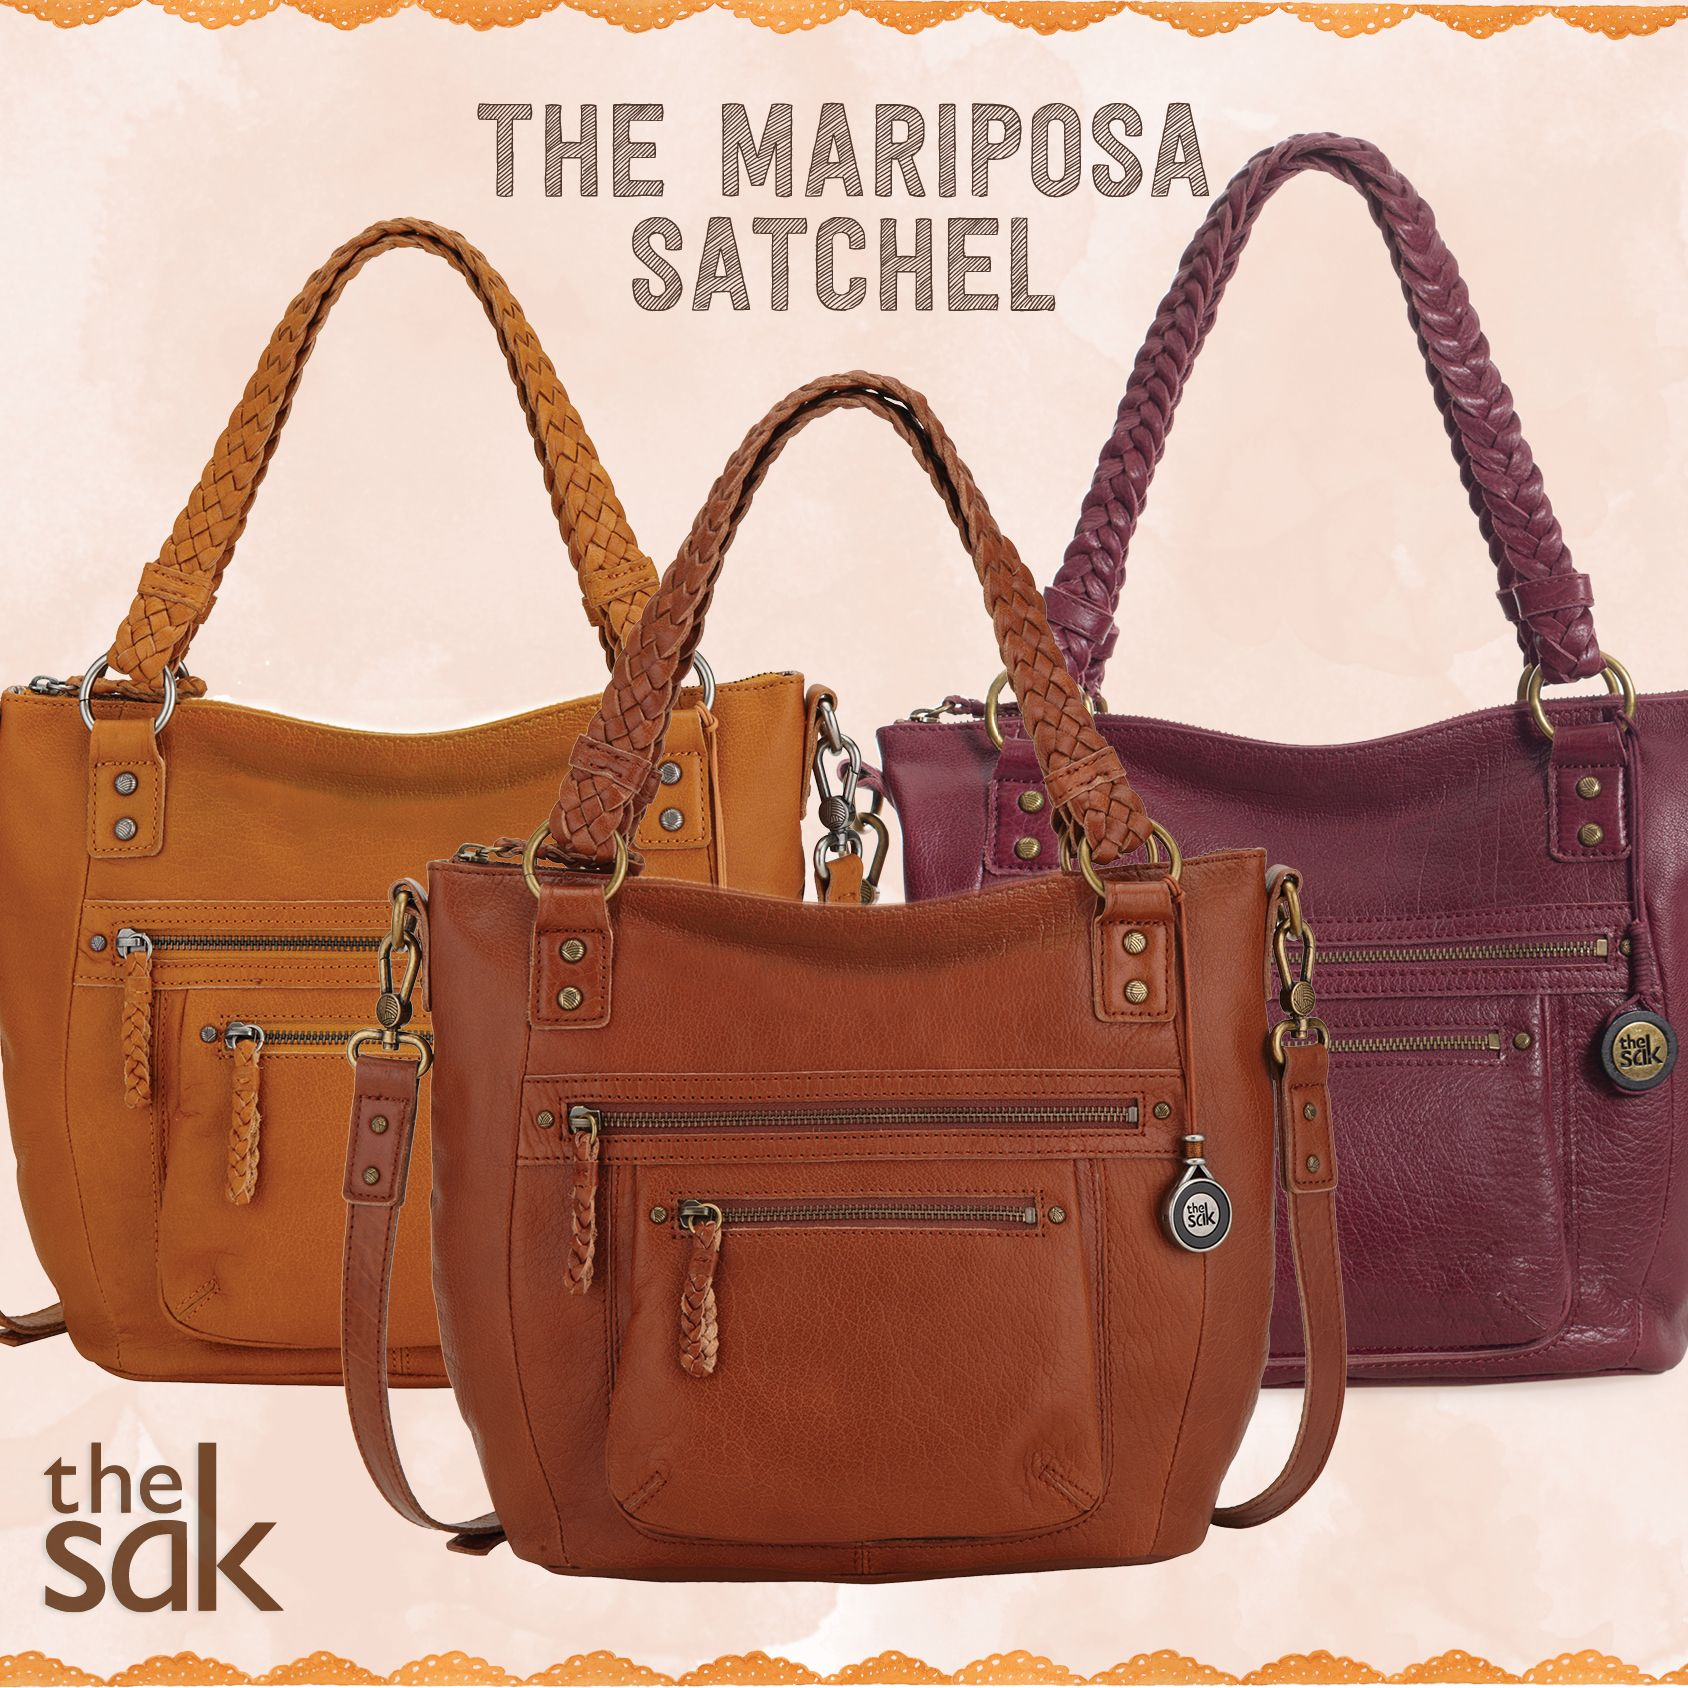 The Marisposa Satchel, featuring woven double handles, multiple front pockets and a removable & adjustable crossbody strap